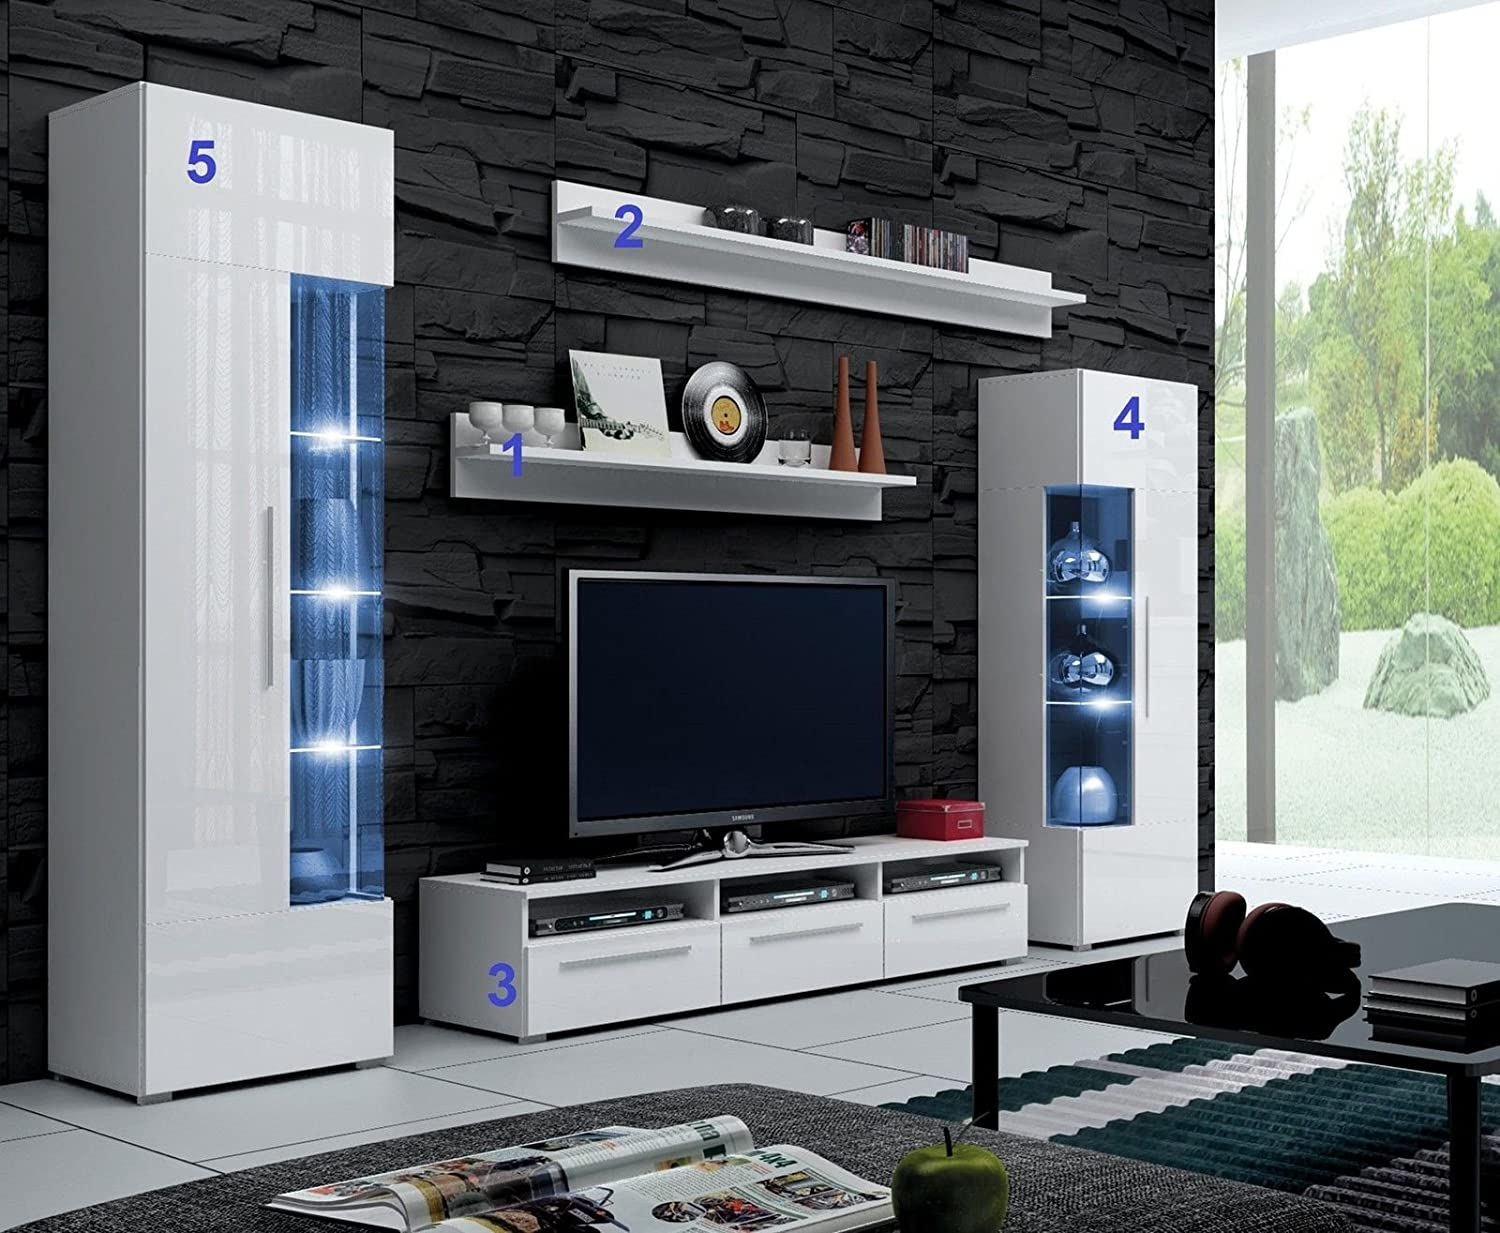 Wall Unit Furniture Living Room Voguish Furniture Combo For Living Room Freestanding Tall